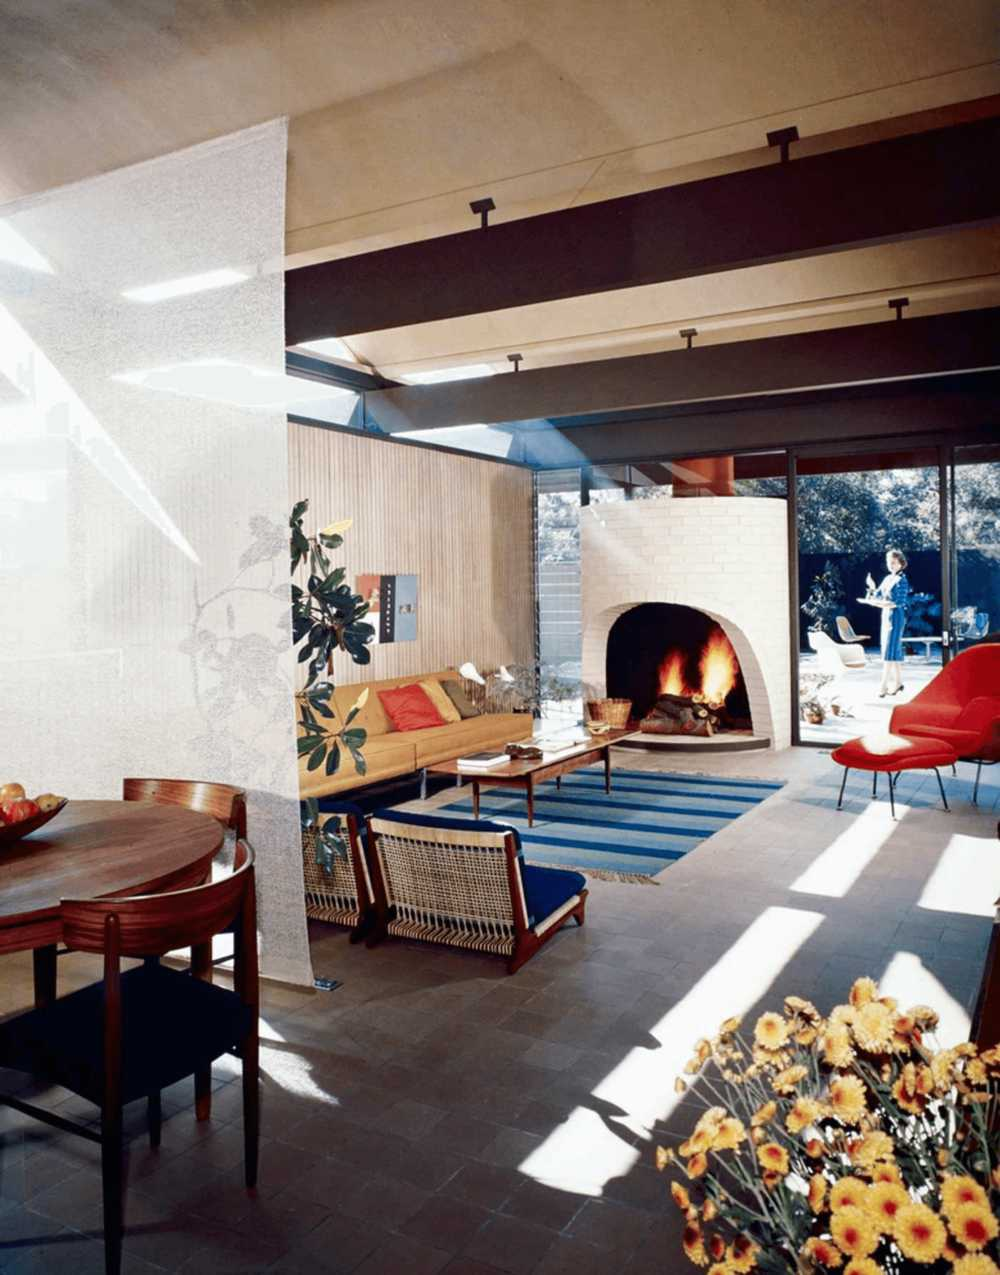 this-is-inside-The-Bass-House-in-Los-Angeles-a-mid-century-modern-home-designed-by-the-architectural-group-Buff-Straub-_-Hensman-and-completed-in-1958